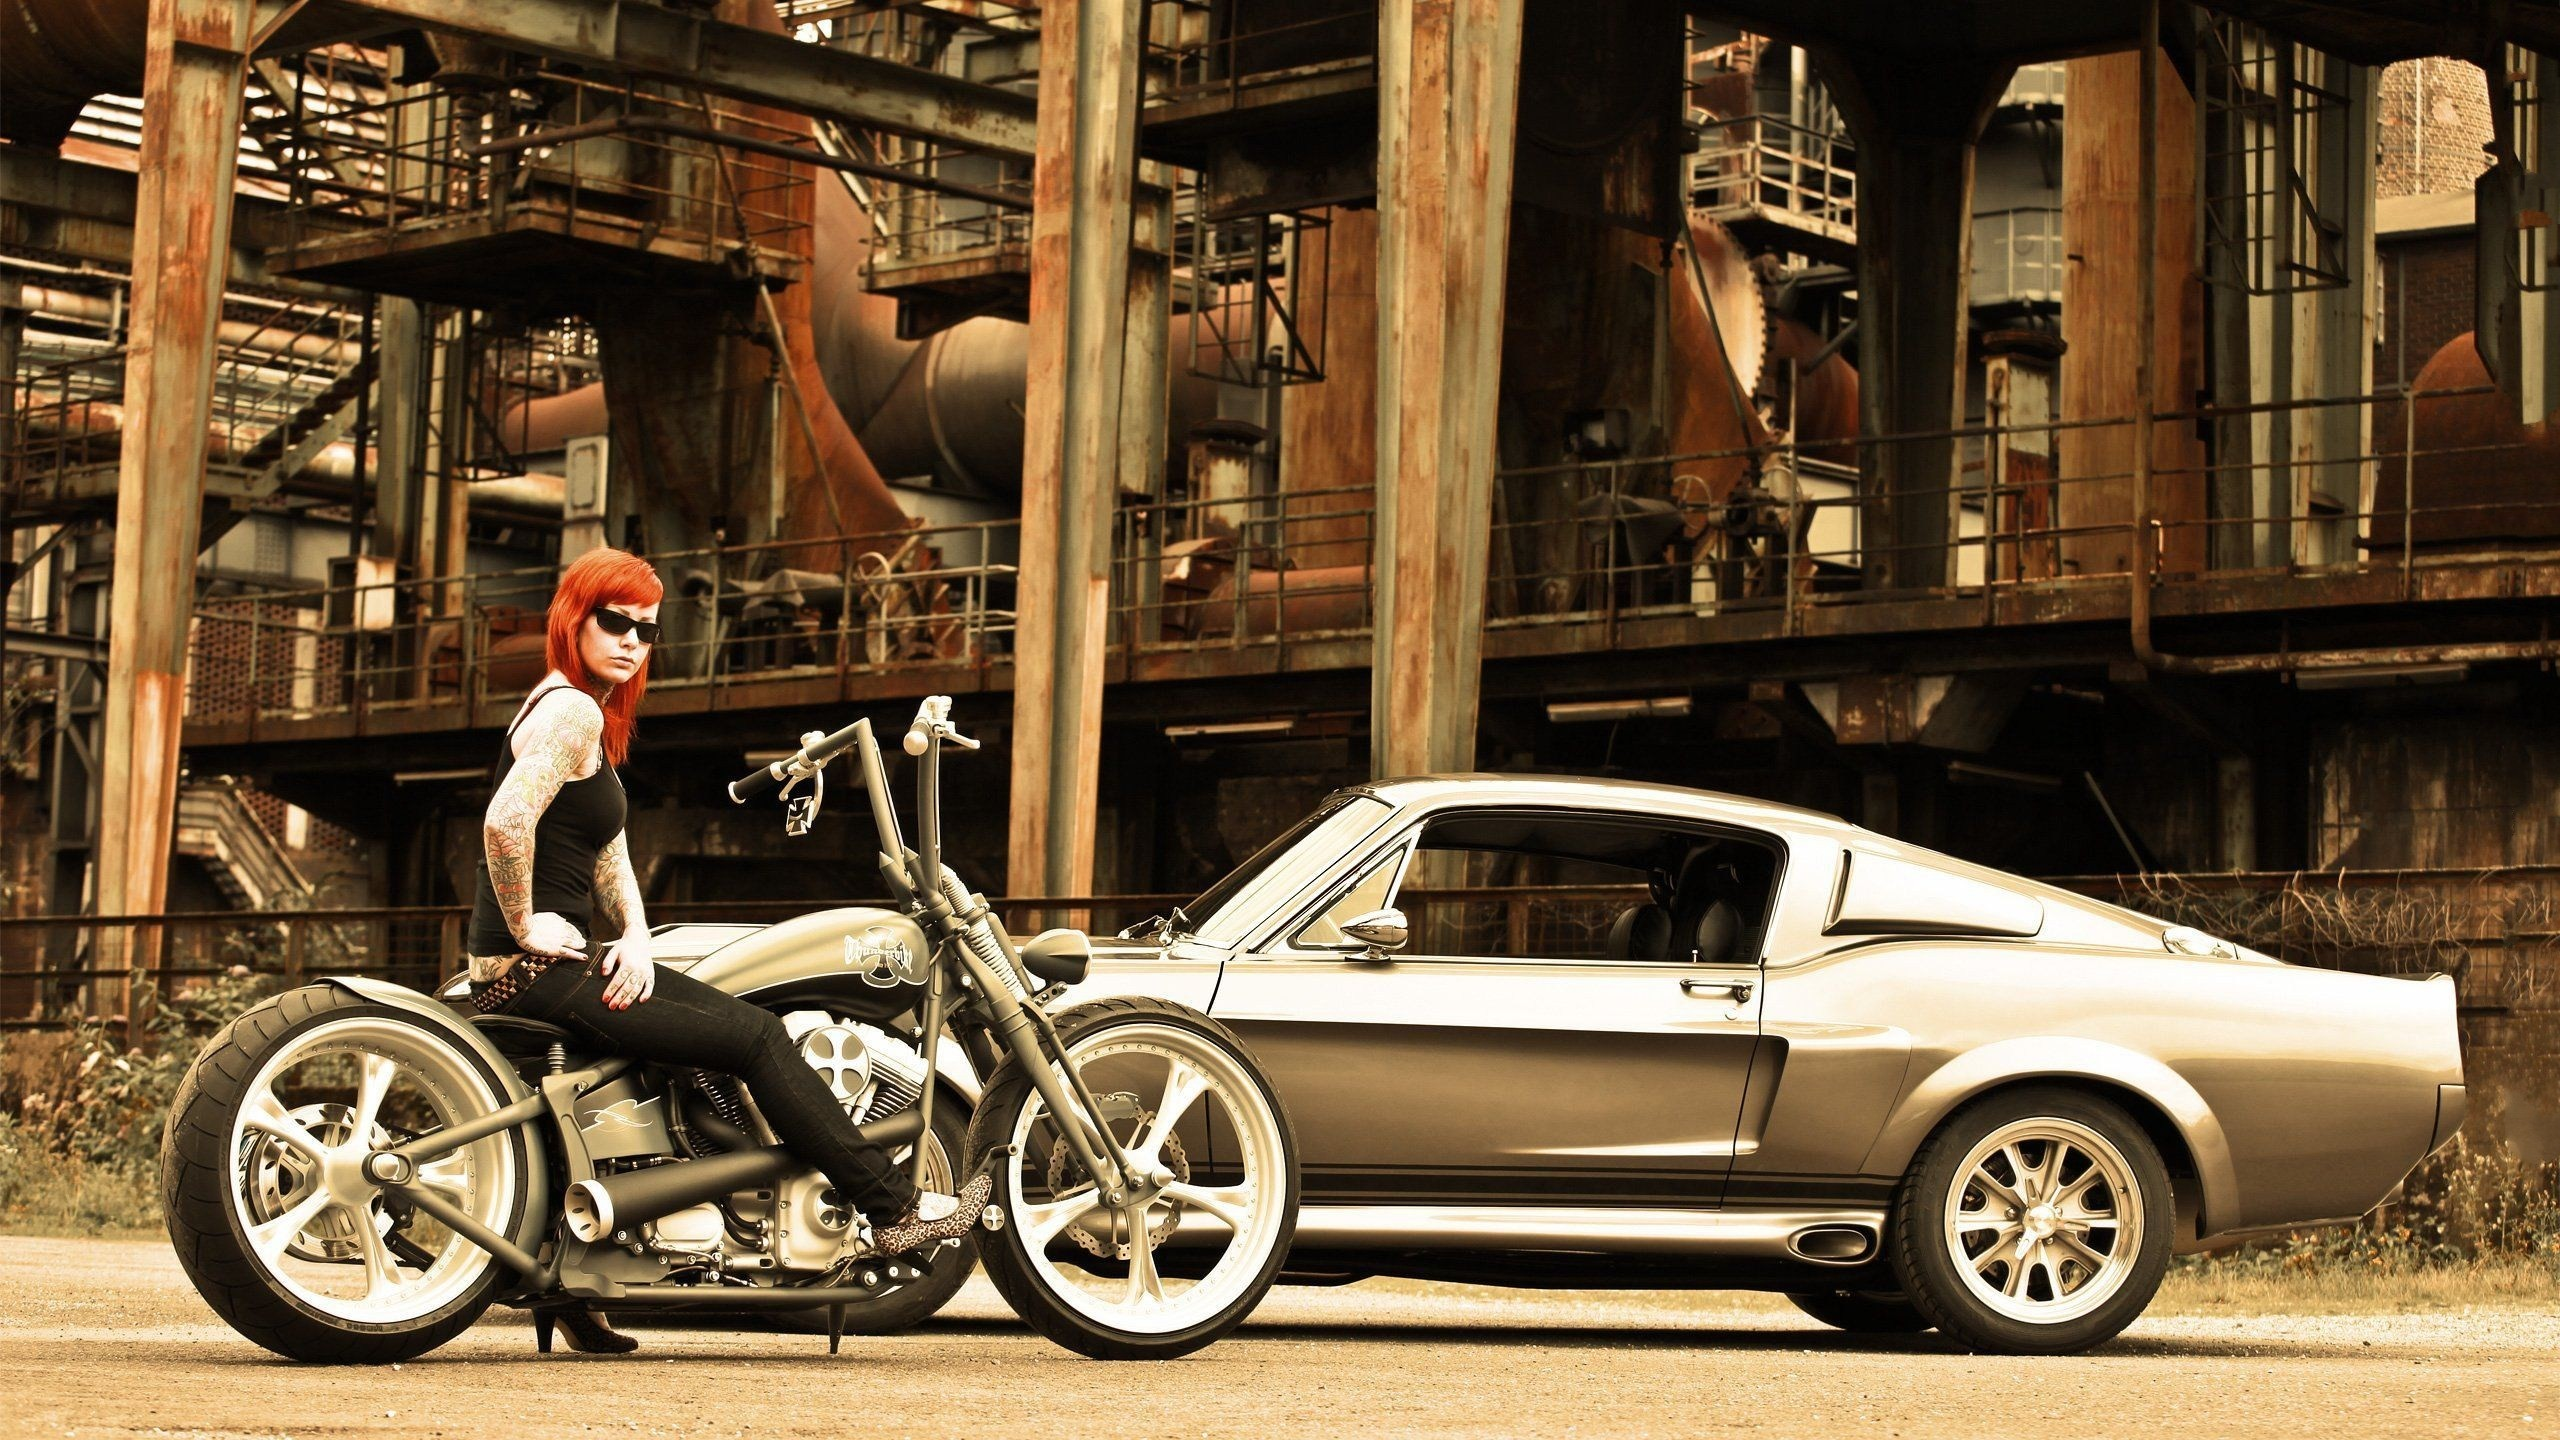 Res: 2560x1440, Bobber Motorcycle Pics (Mobile, iPad)